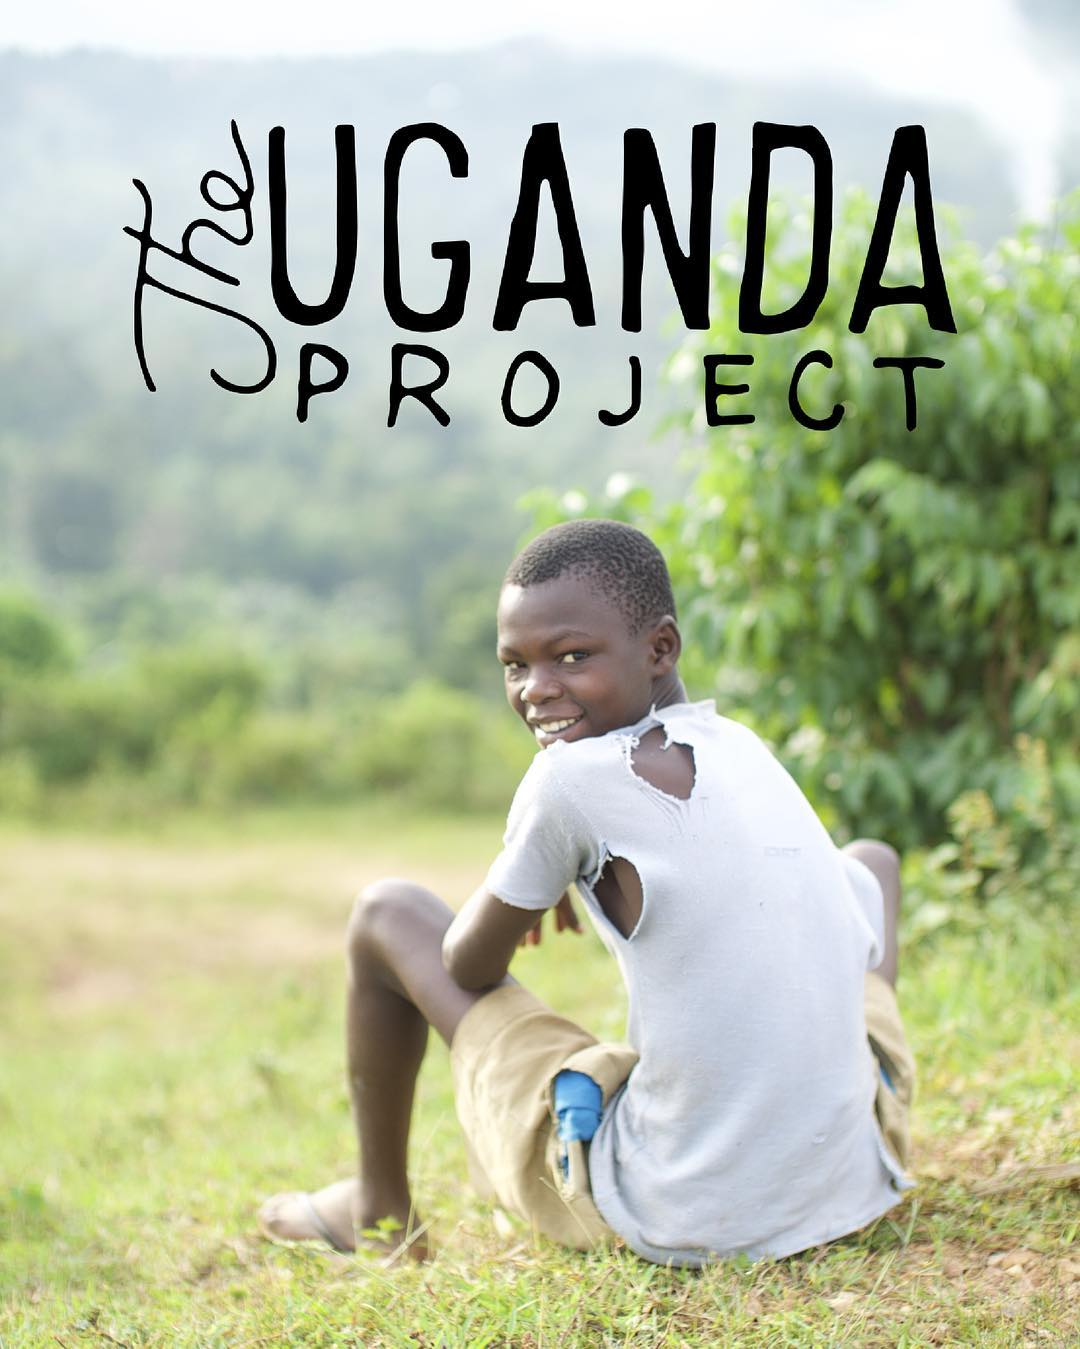 Have you entered our free trip giveaway yet? We're giving one lucky winner an all expenses paid trip to join us and @helpintl on our latest Do Good project - #TheUgandaProject. Enter via the link in our bio, and go to iwantproof.com/Uganda for more...